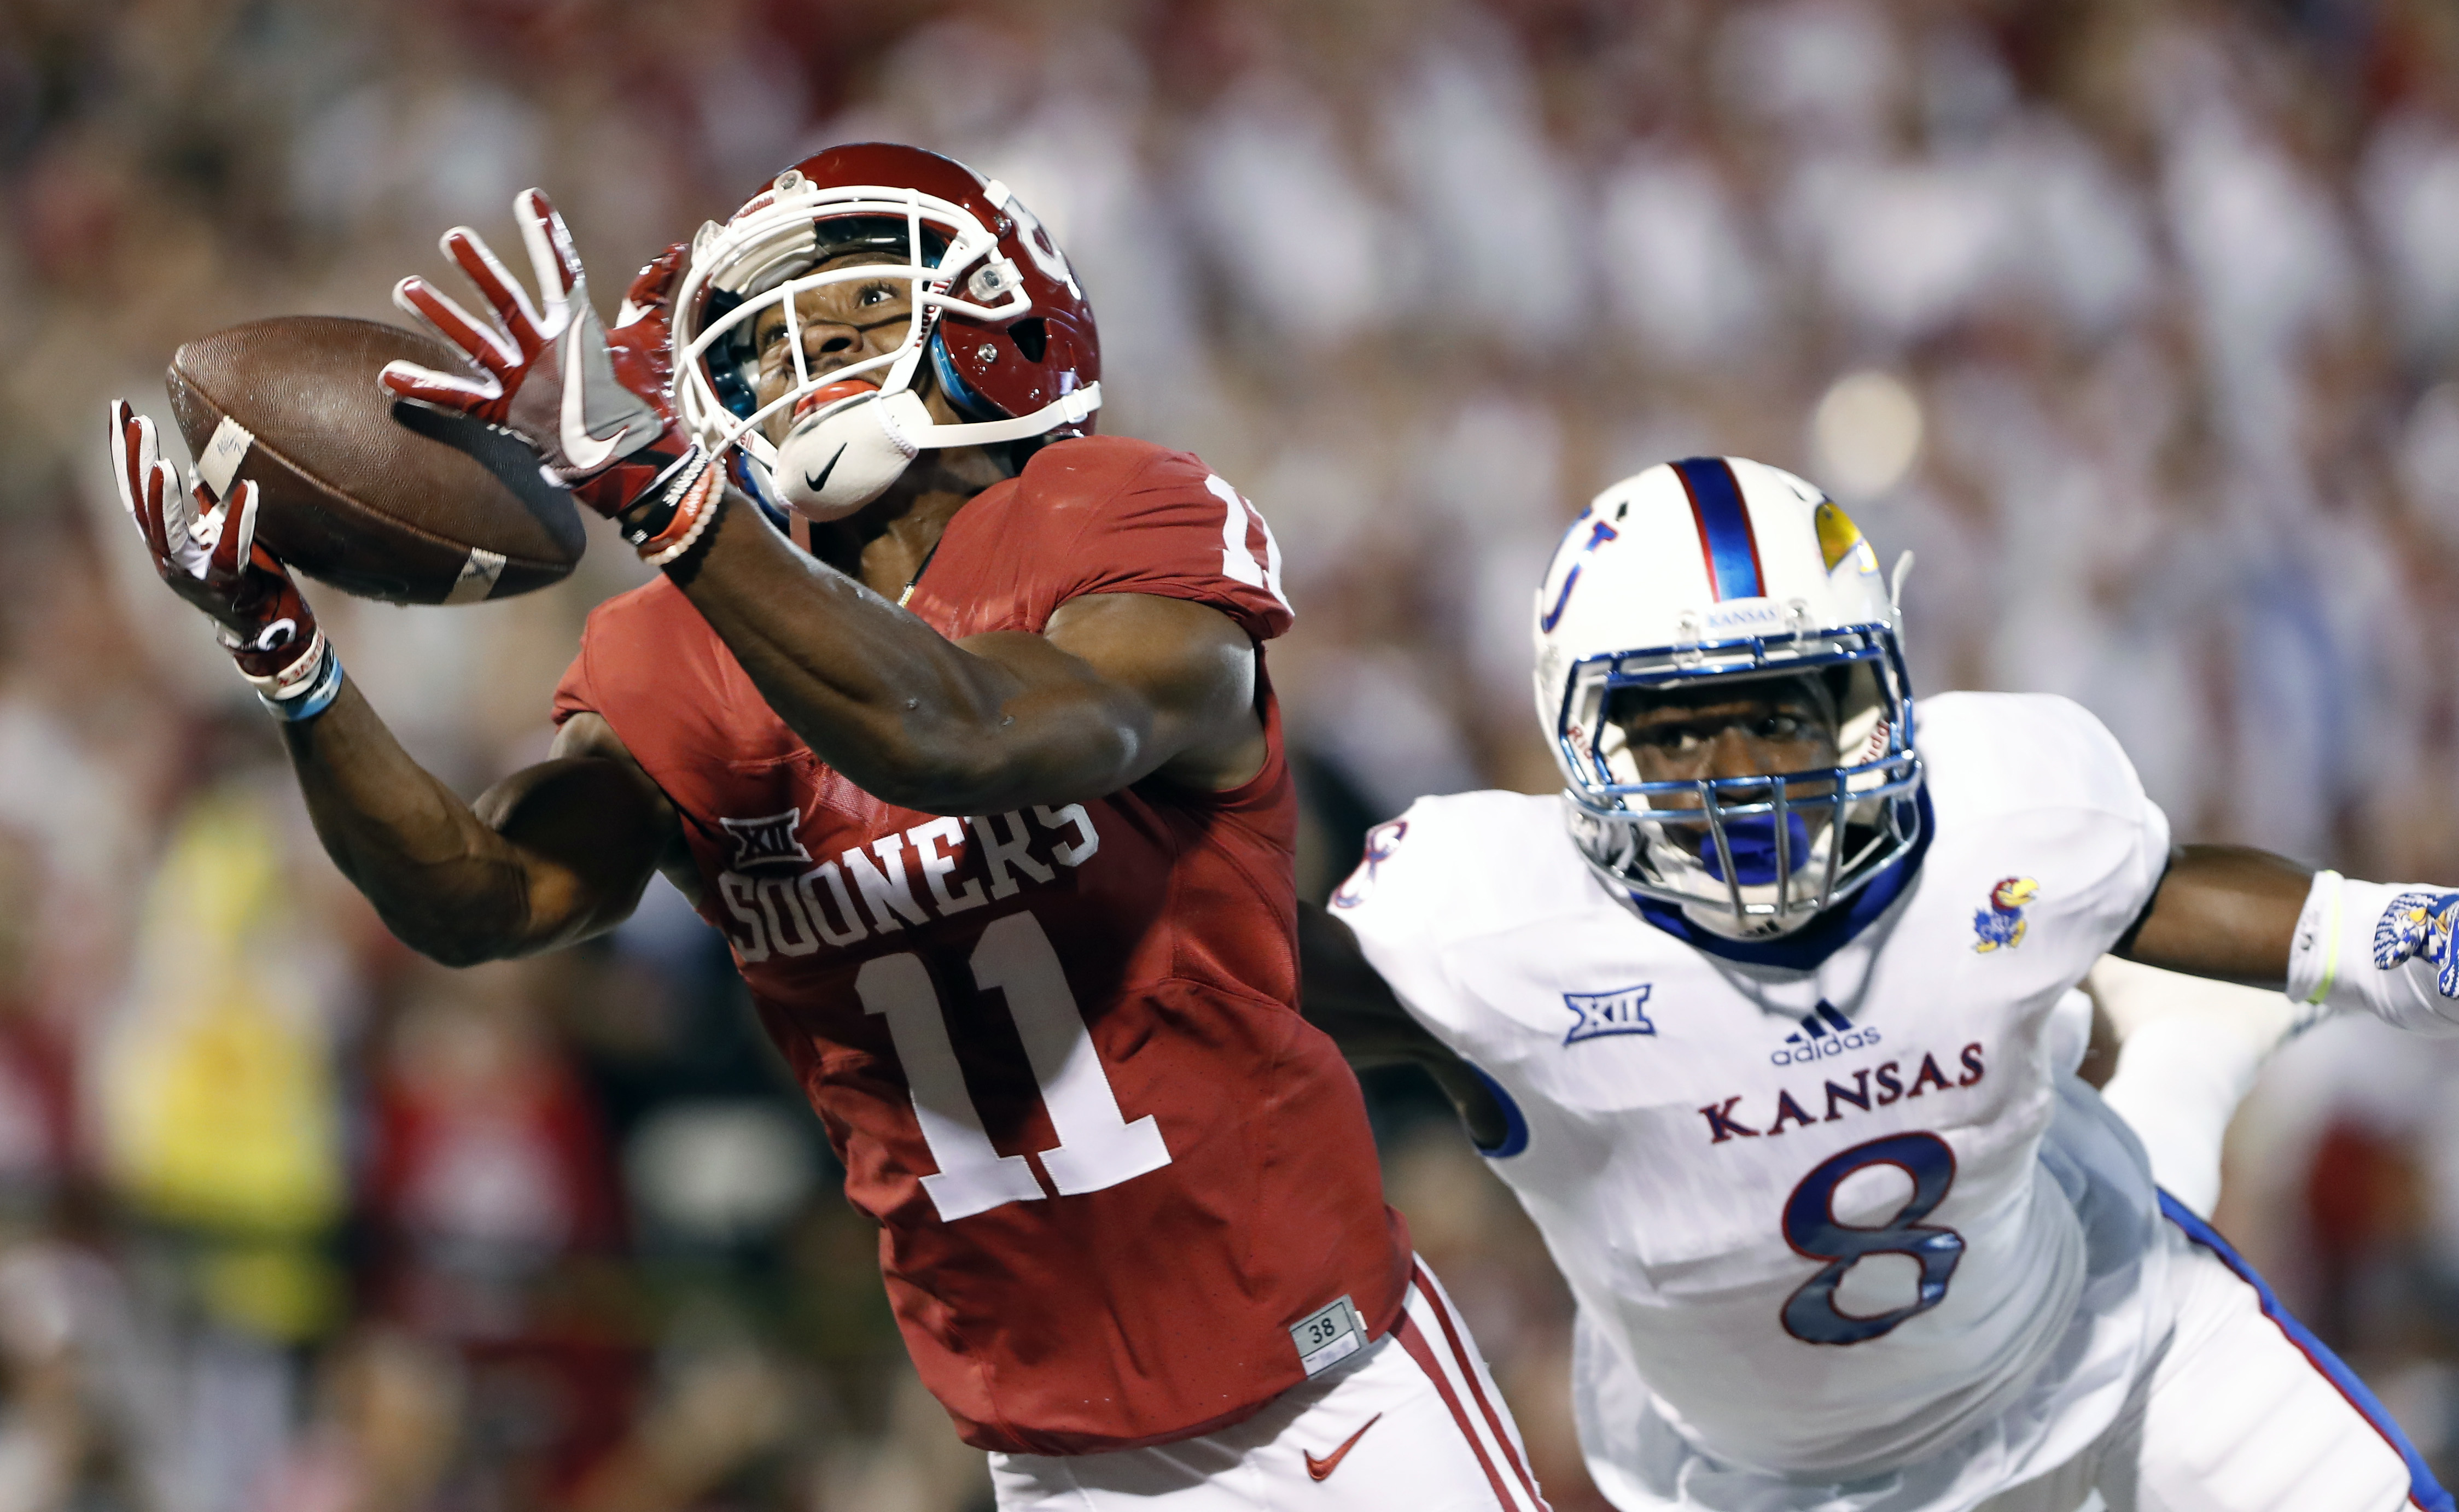 FILE - In this Oct. 29, 2016, file photo, Oklahoma wide receiver Dede Westbrook (11) makes a catch for a touchdown ahead of Kansas cornerback Brandon Stewart (8) during the first half of an NCAA college football game in Norman, Okla. Westbrook was selecte